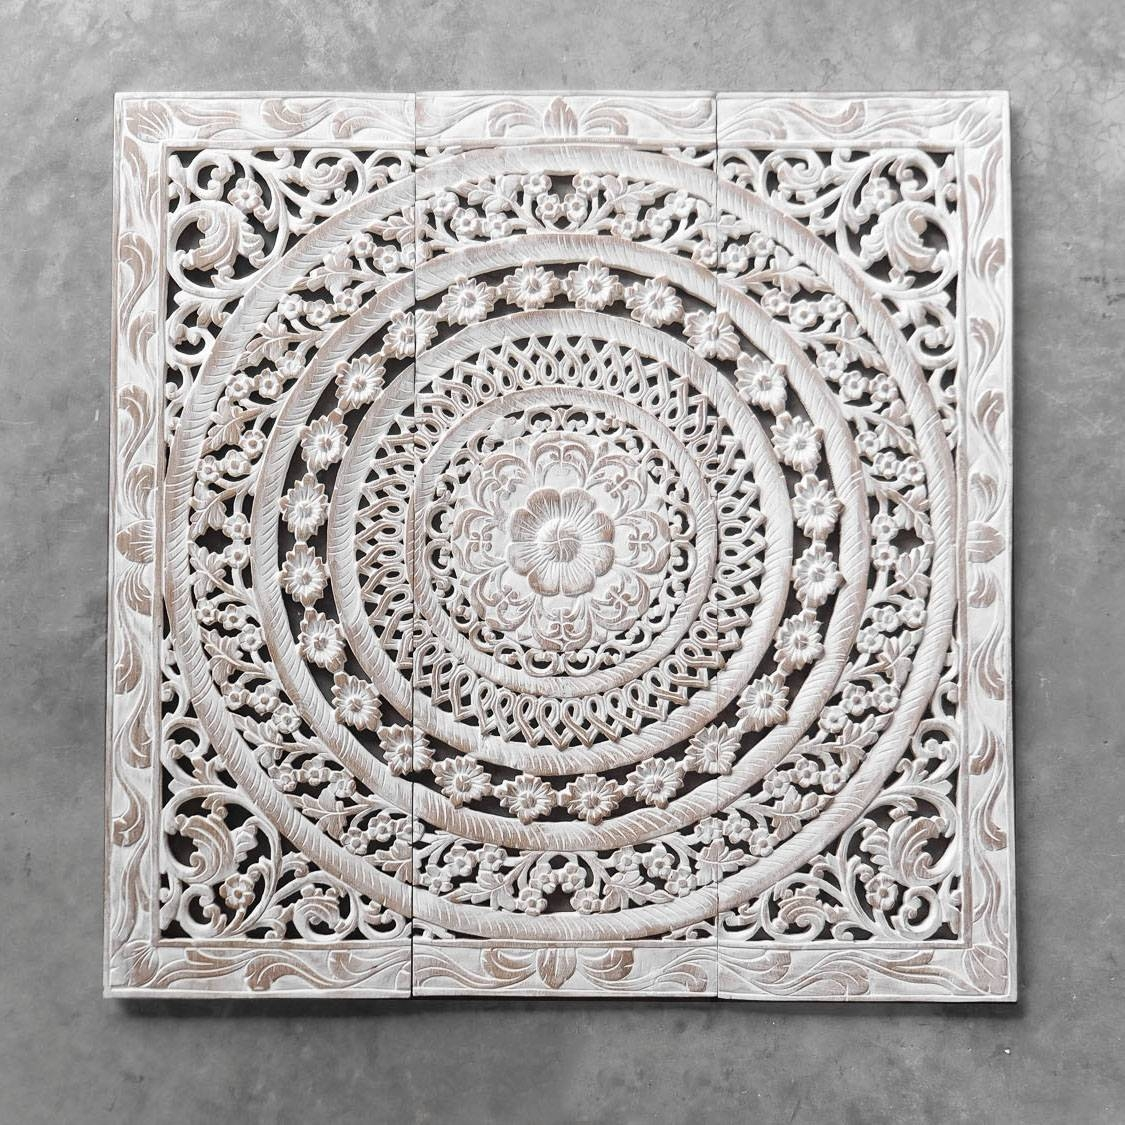 Awesome Carved Wood Wall Decor Products Wood Art Panels Wb Carved Within Most Current Wood Carved Wall Art Panels (View 3 of 25)